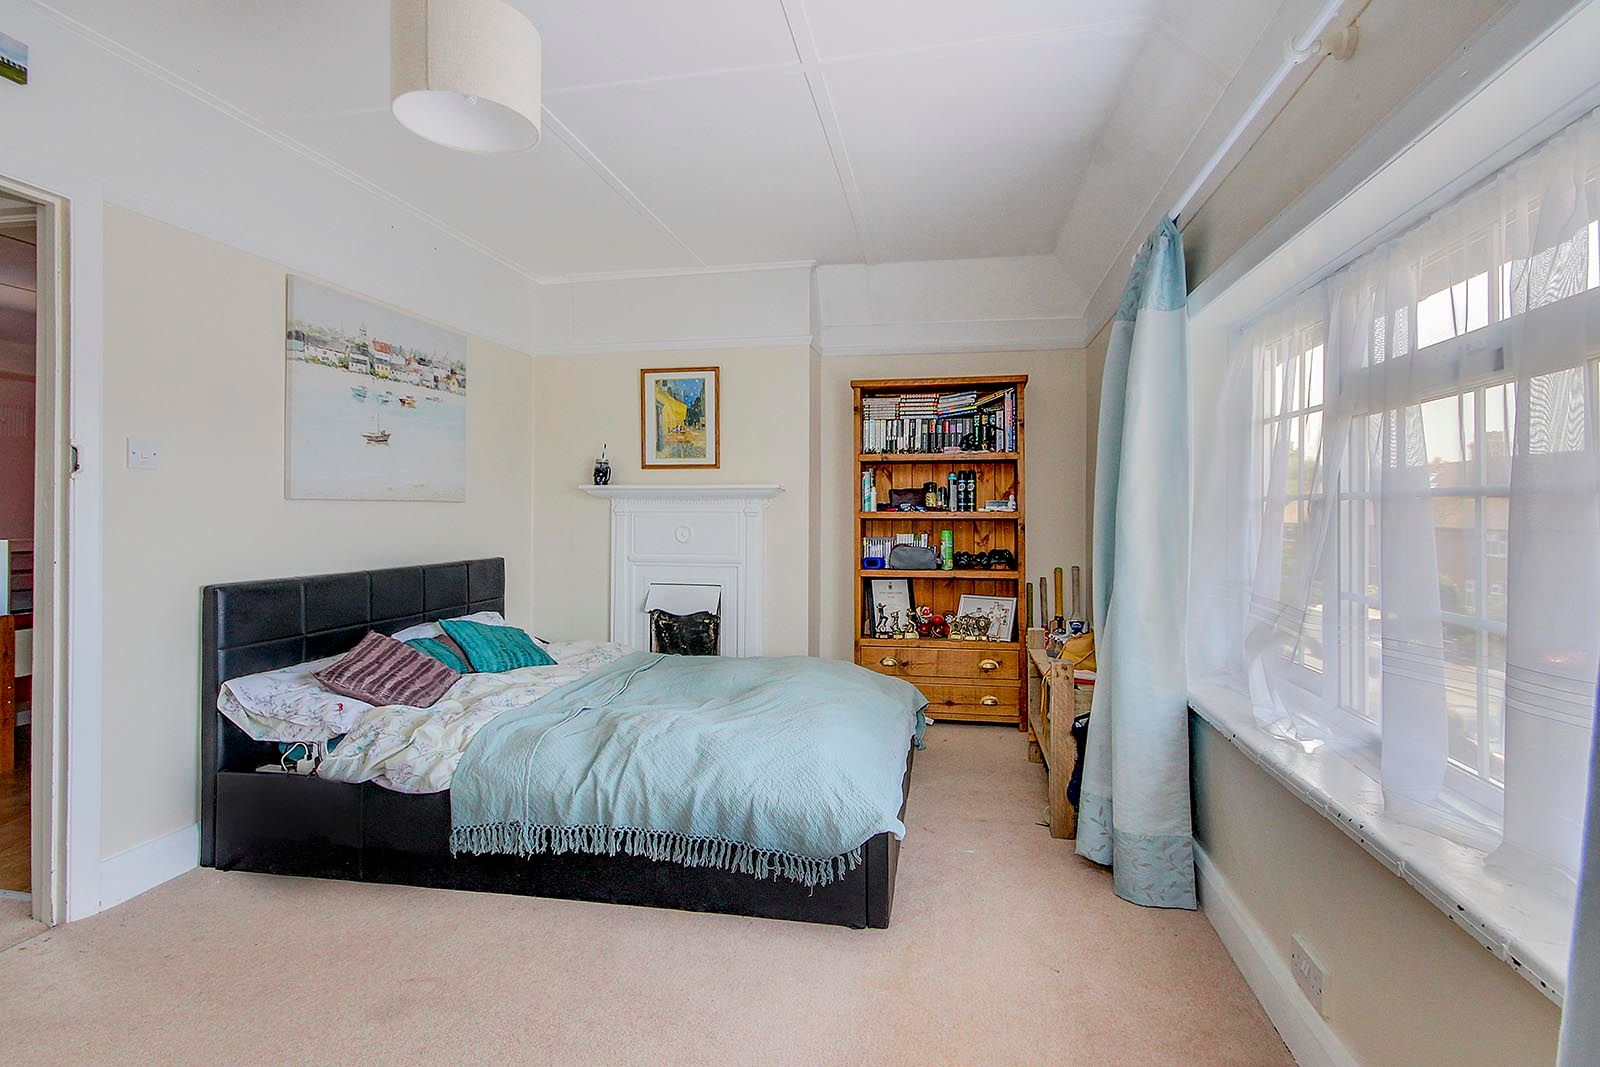 3 bed house for sale in Clapham Common  - Property Image 5